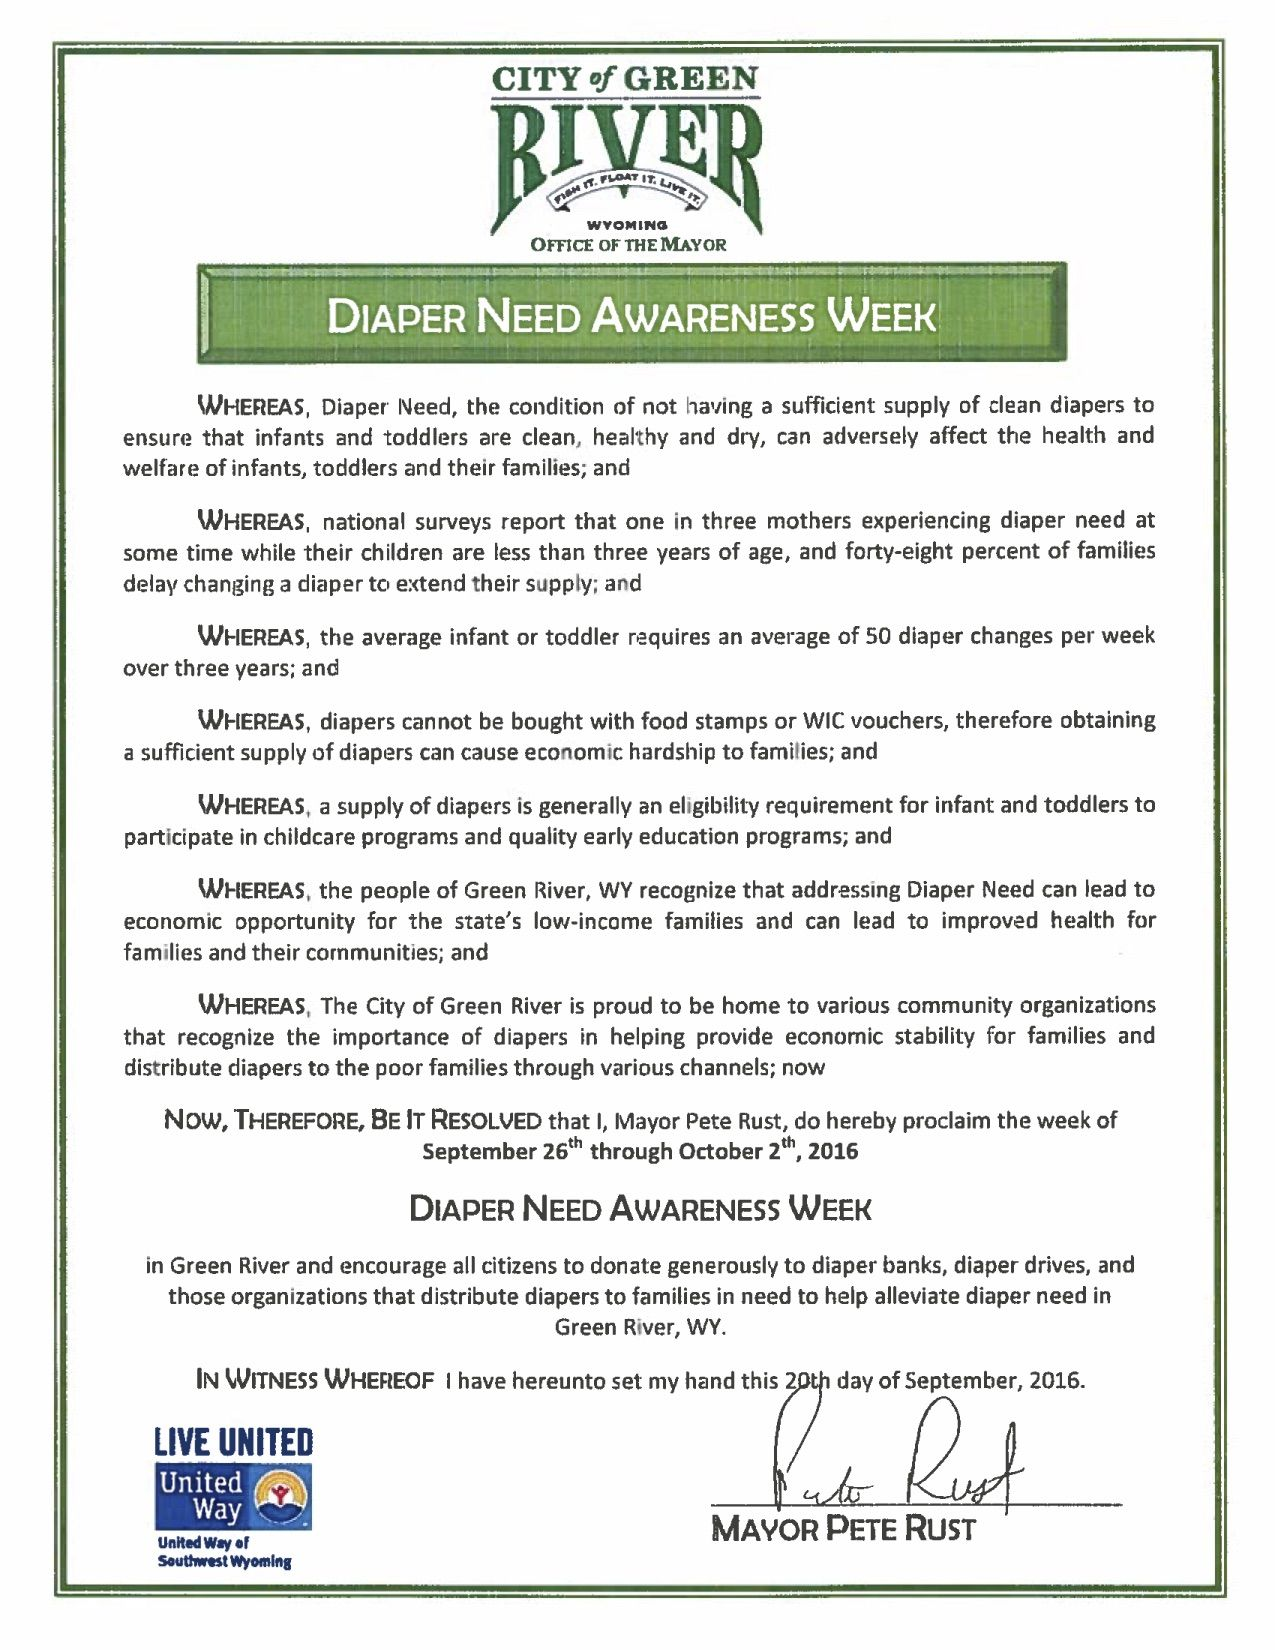 GREEN RIVER, WY- Mayoral proclamation recognizing Diaper Need Awareness Week (Sep. 26-Oct. 2, 2016) #DiaperNeed Diaperneed.org